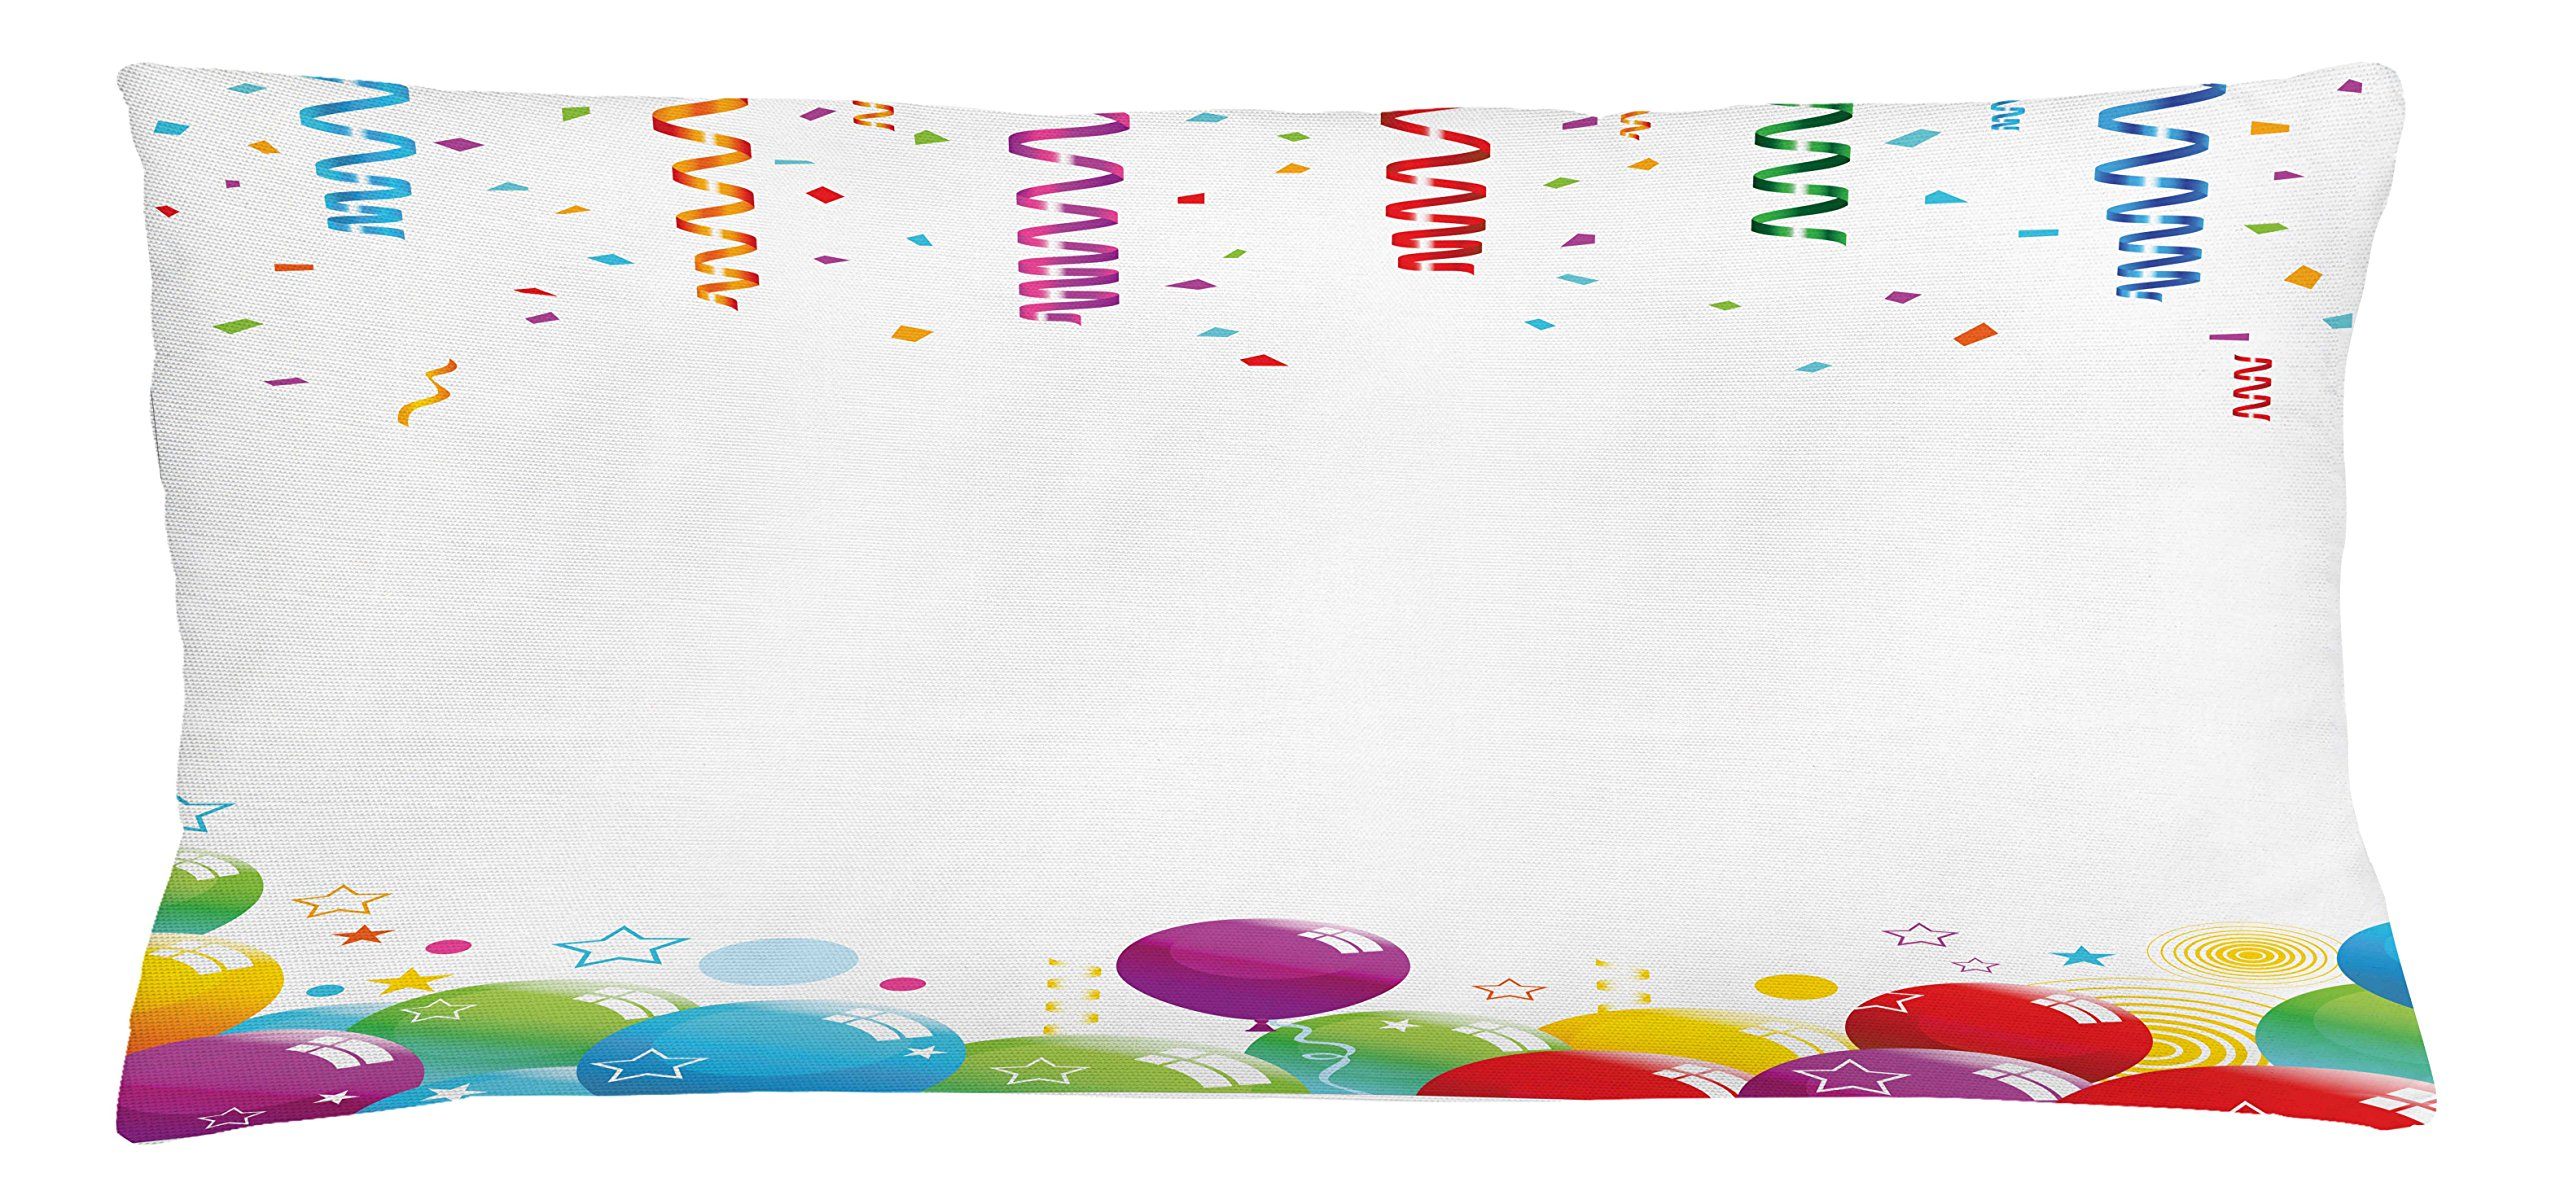 Ambesonne Kids Party Throw Pillow Cushion Cover, Confetti Rain with Curls and Balloons Stars Dots Joyful Happy Greeting Concept, Decorative Square Accent Pillow Case, 36 X 16 inches, Multicolor